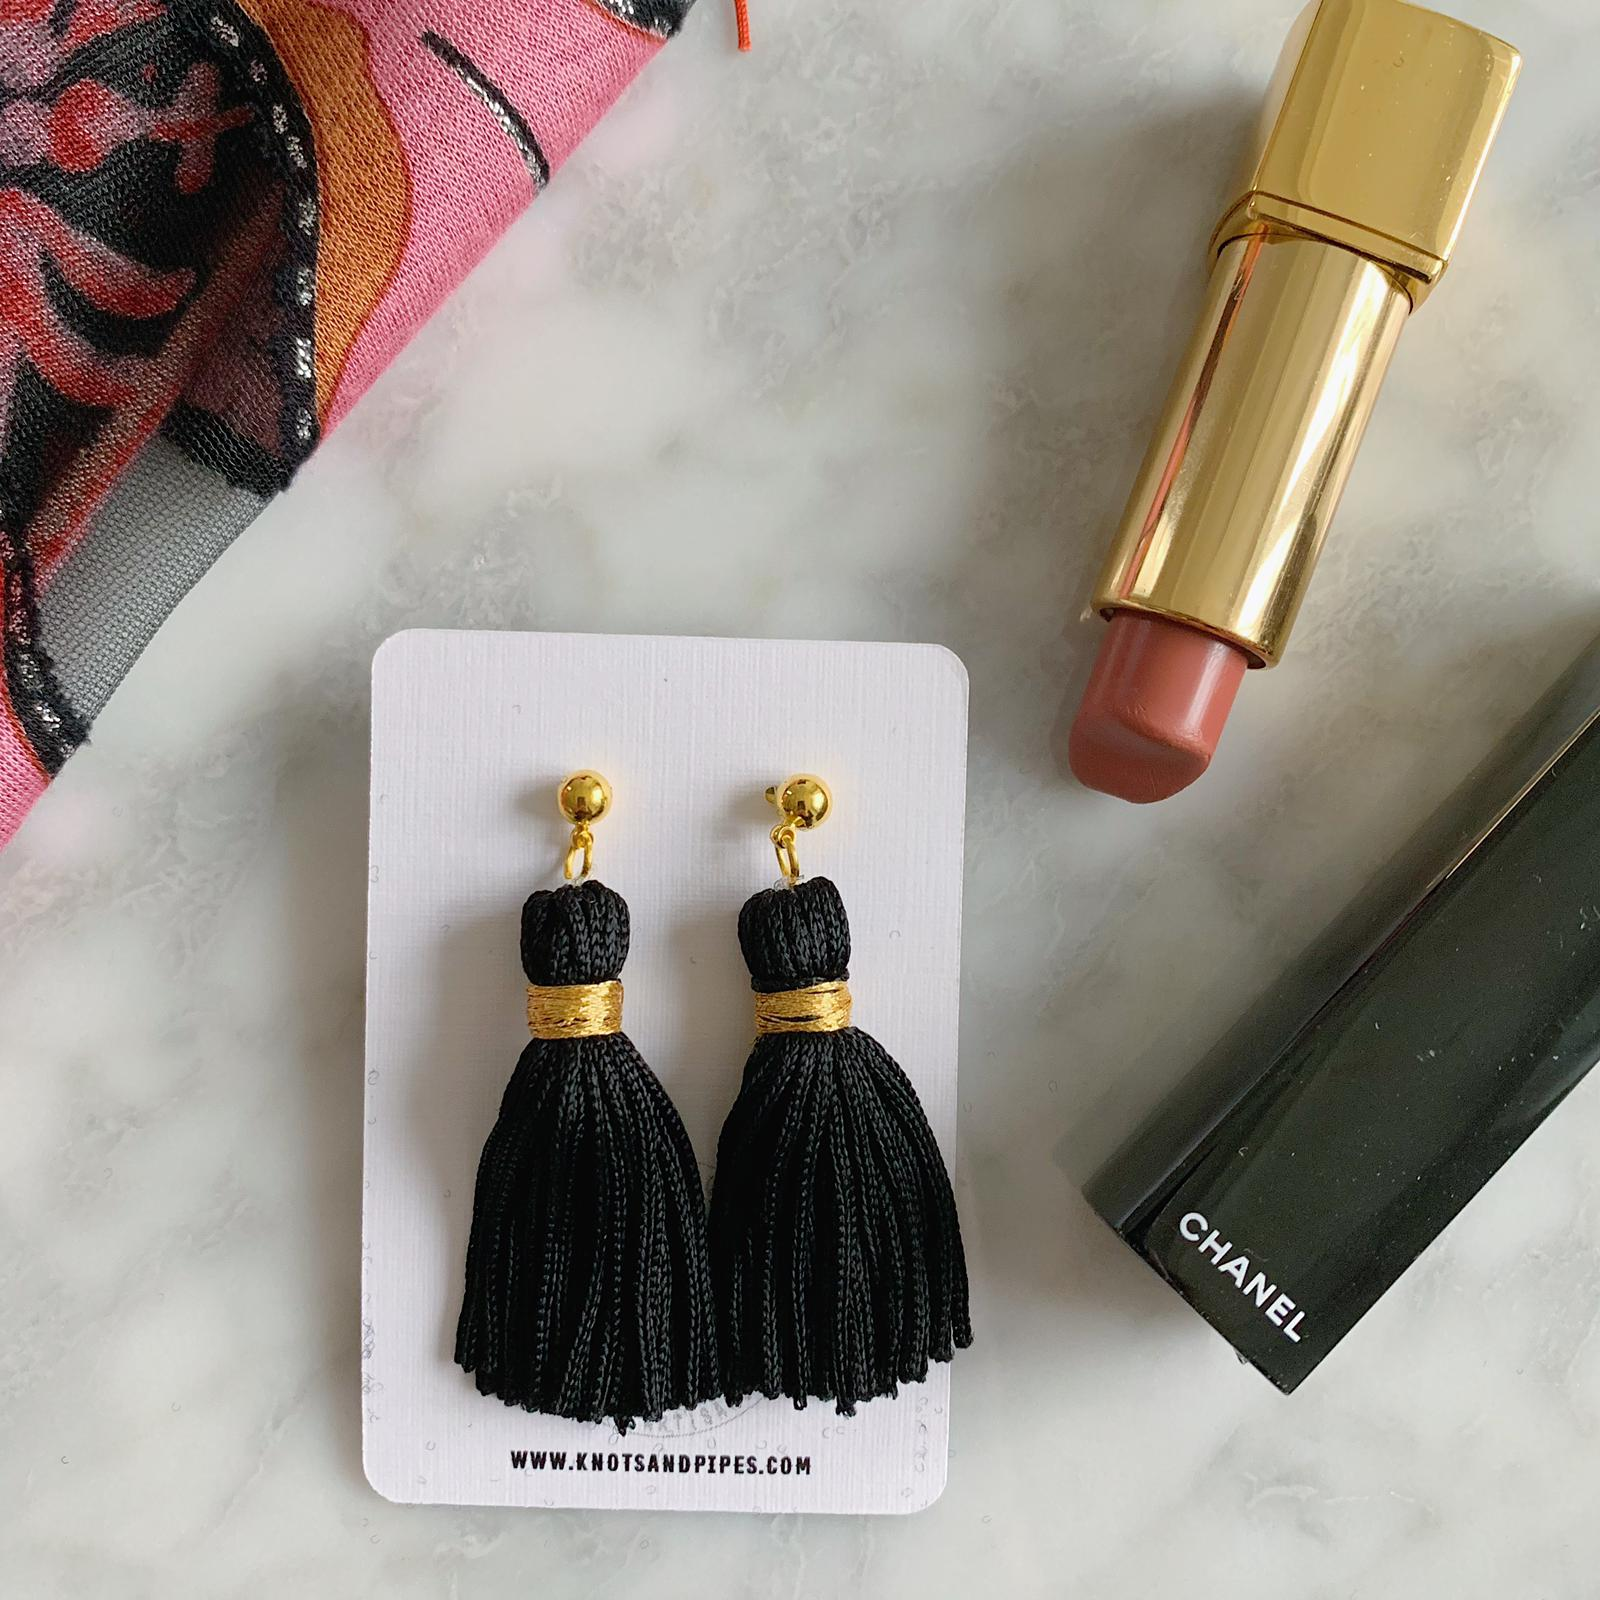 K&P | Black & Gold Tassel Earrings